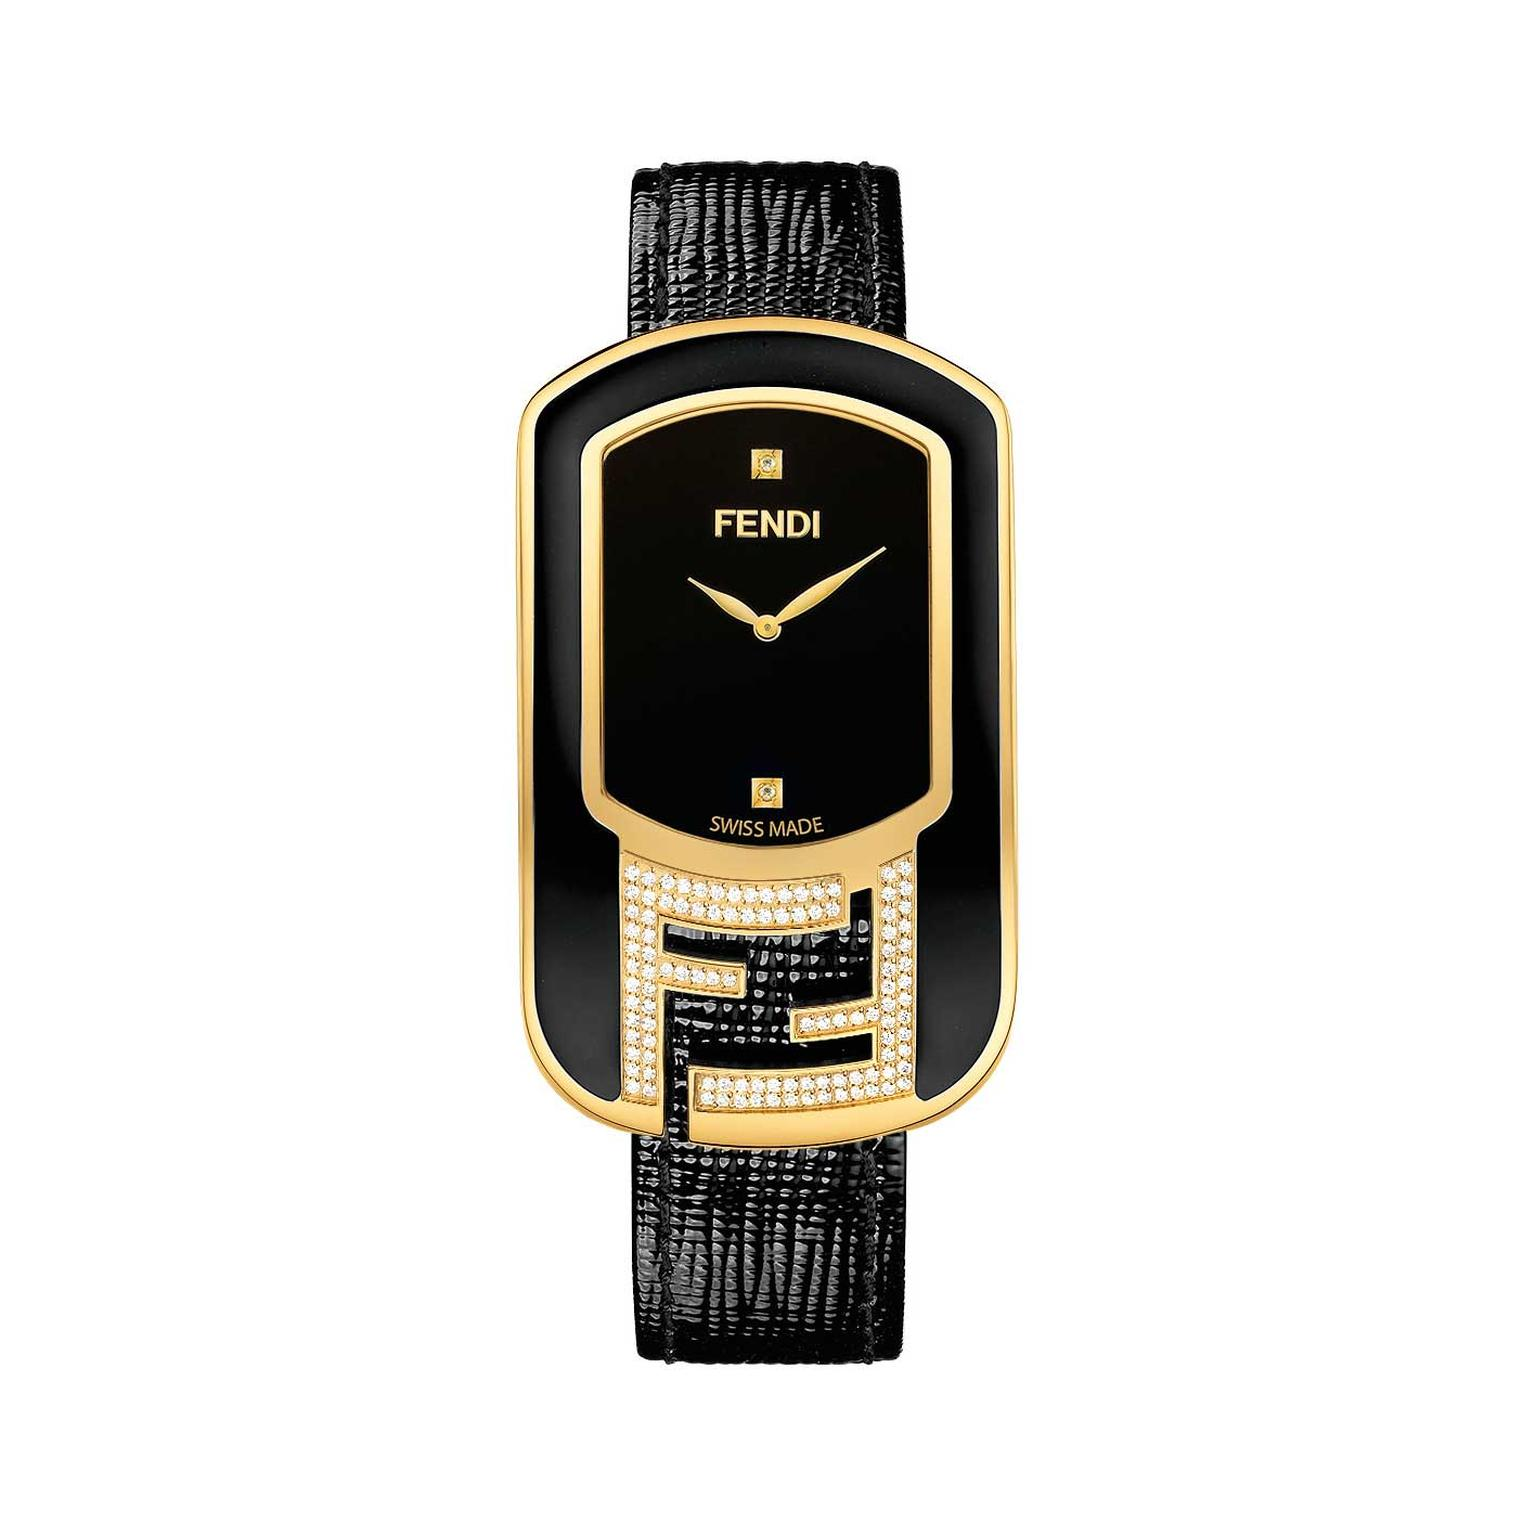 Fendi Chameleon diamond watch with black laquered dial